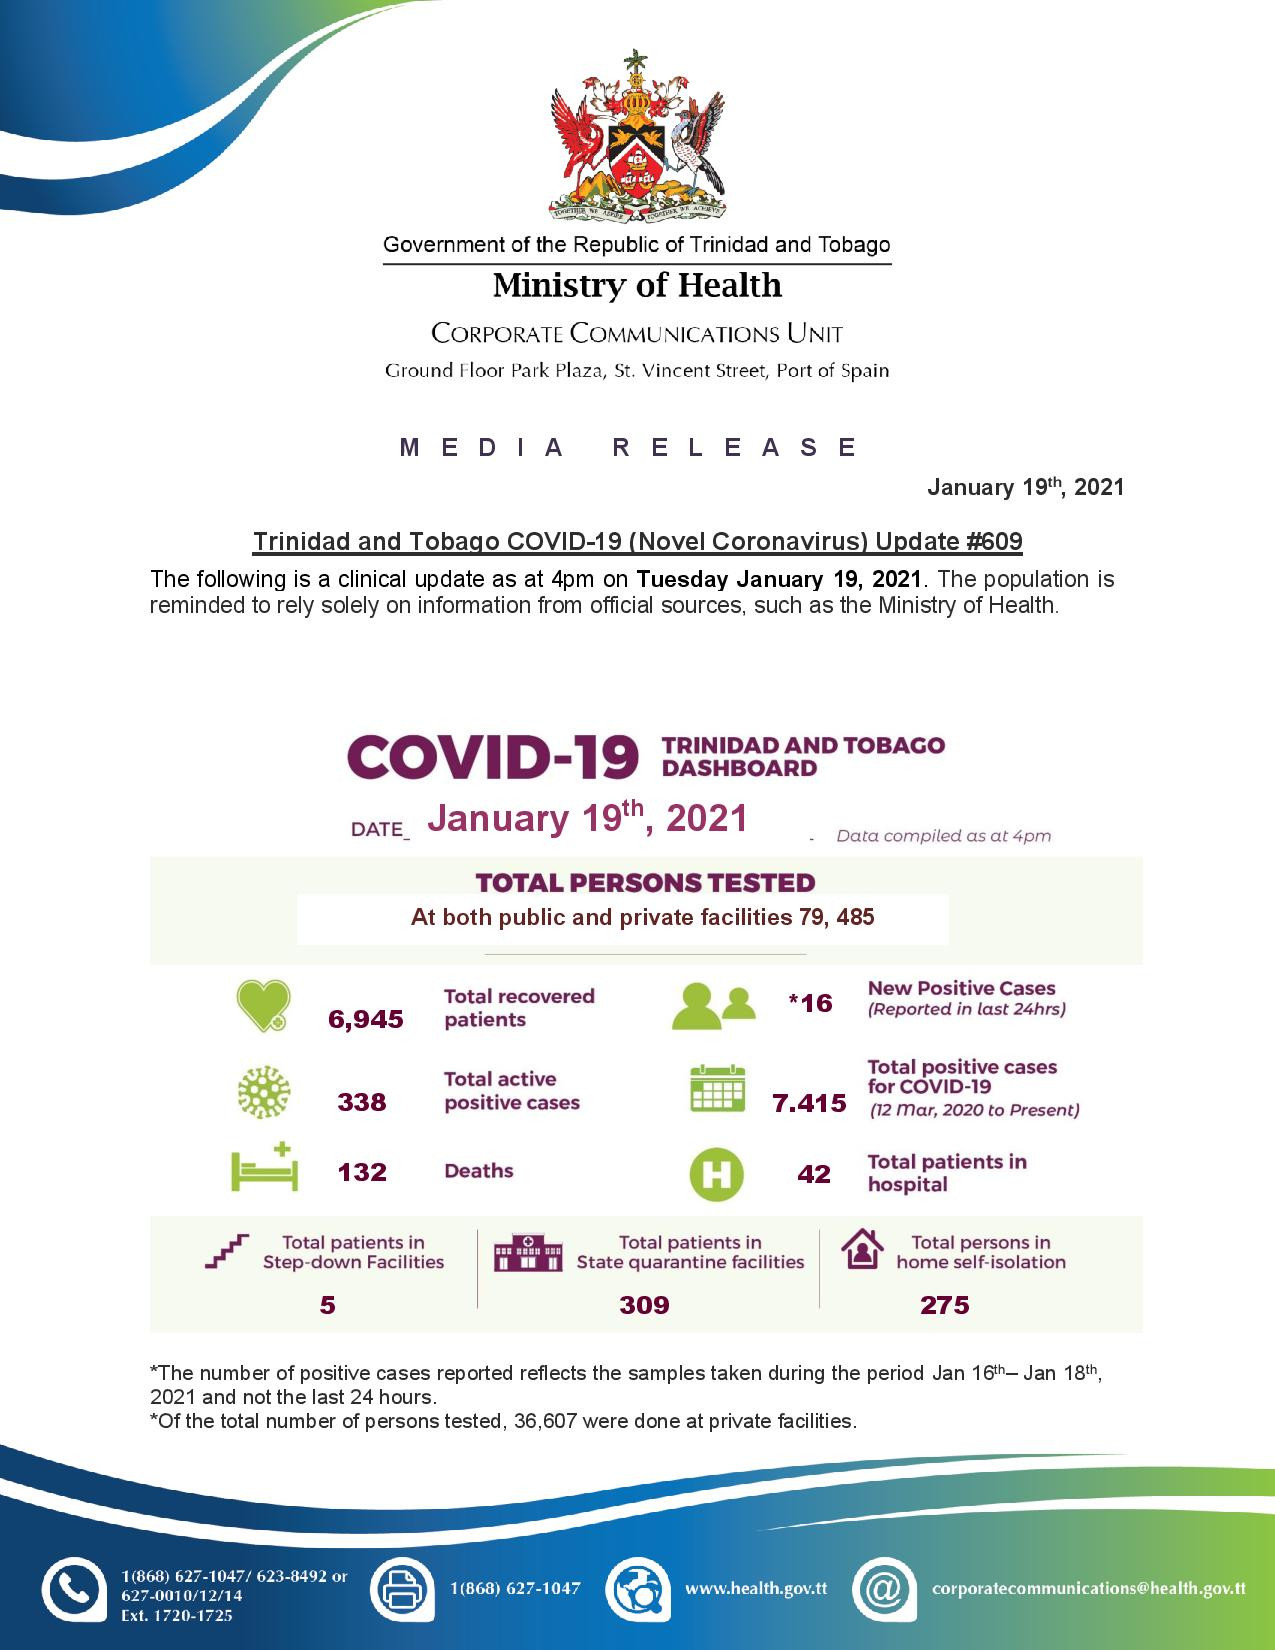 COVID-19 UPDATE - Tuesday 19th January 2021